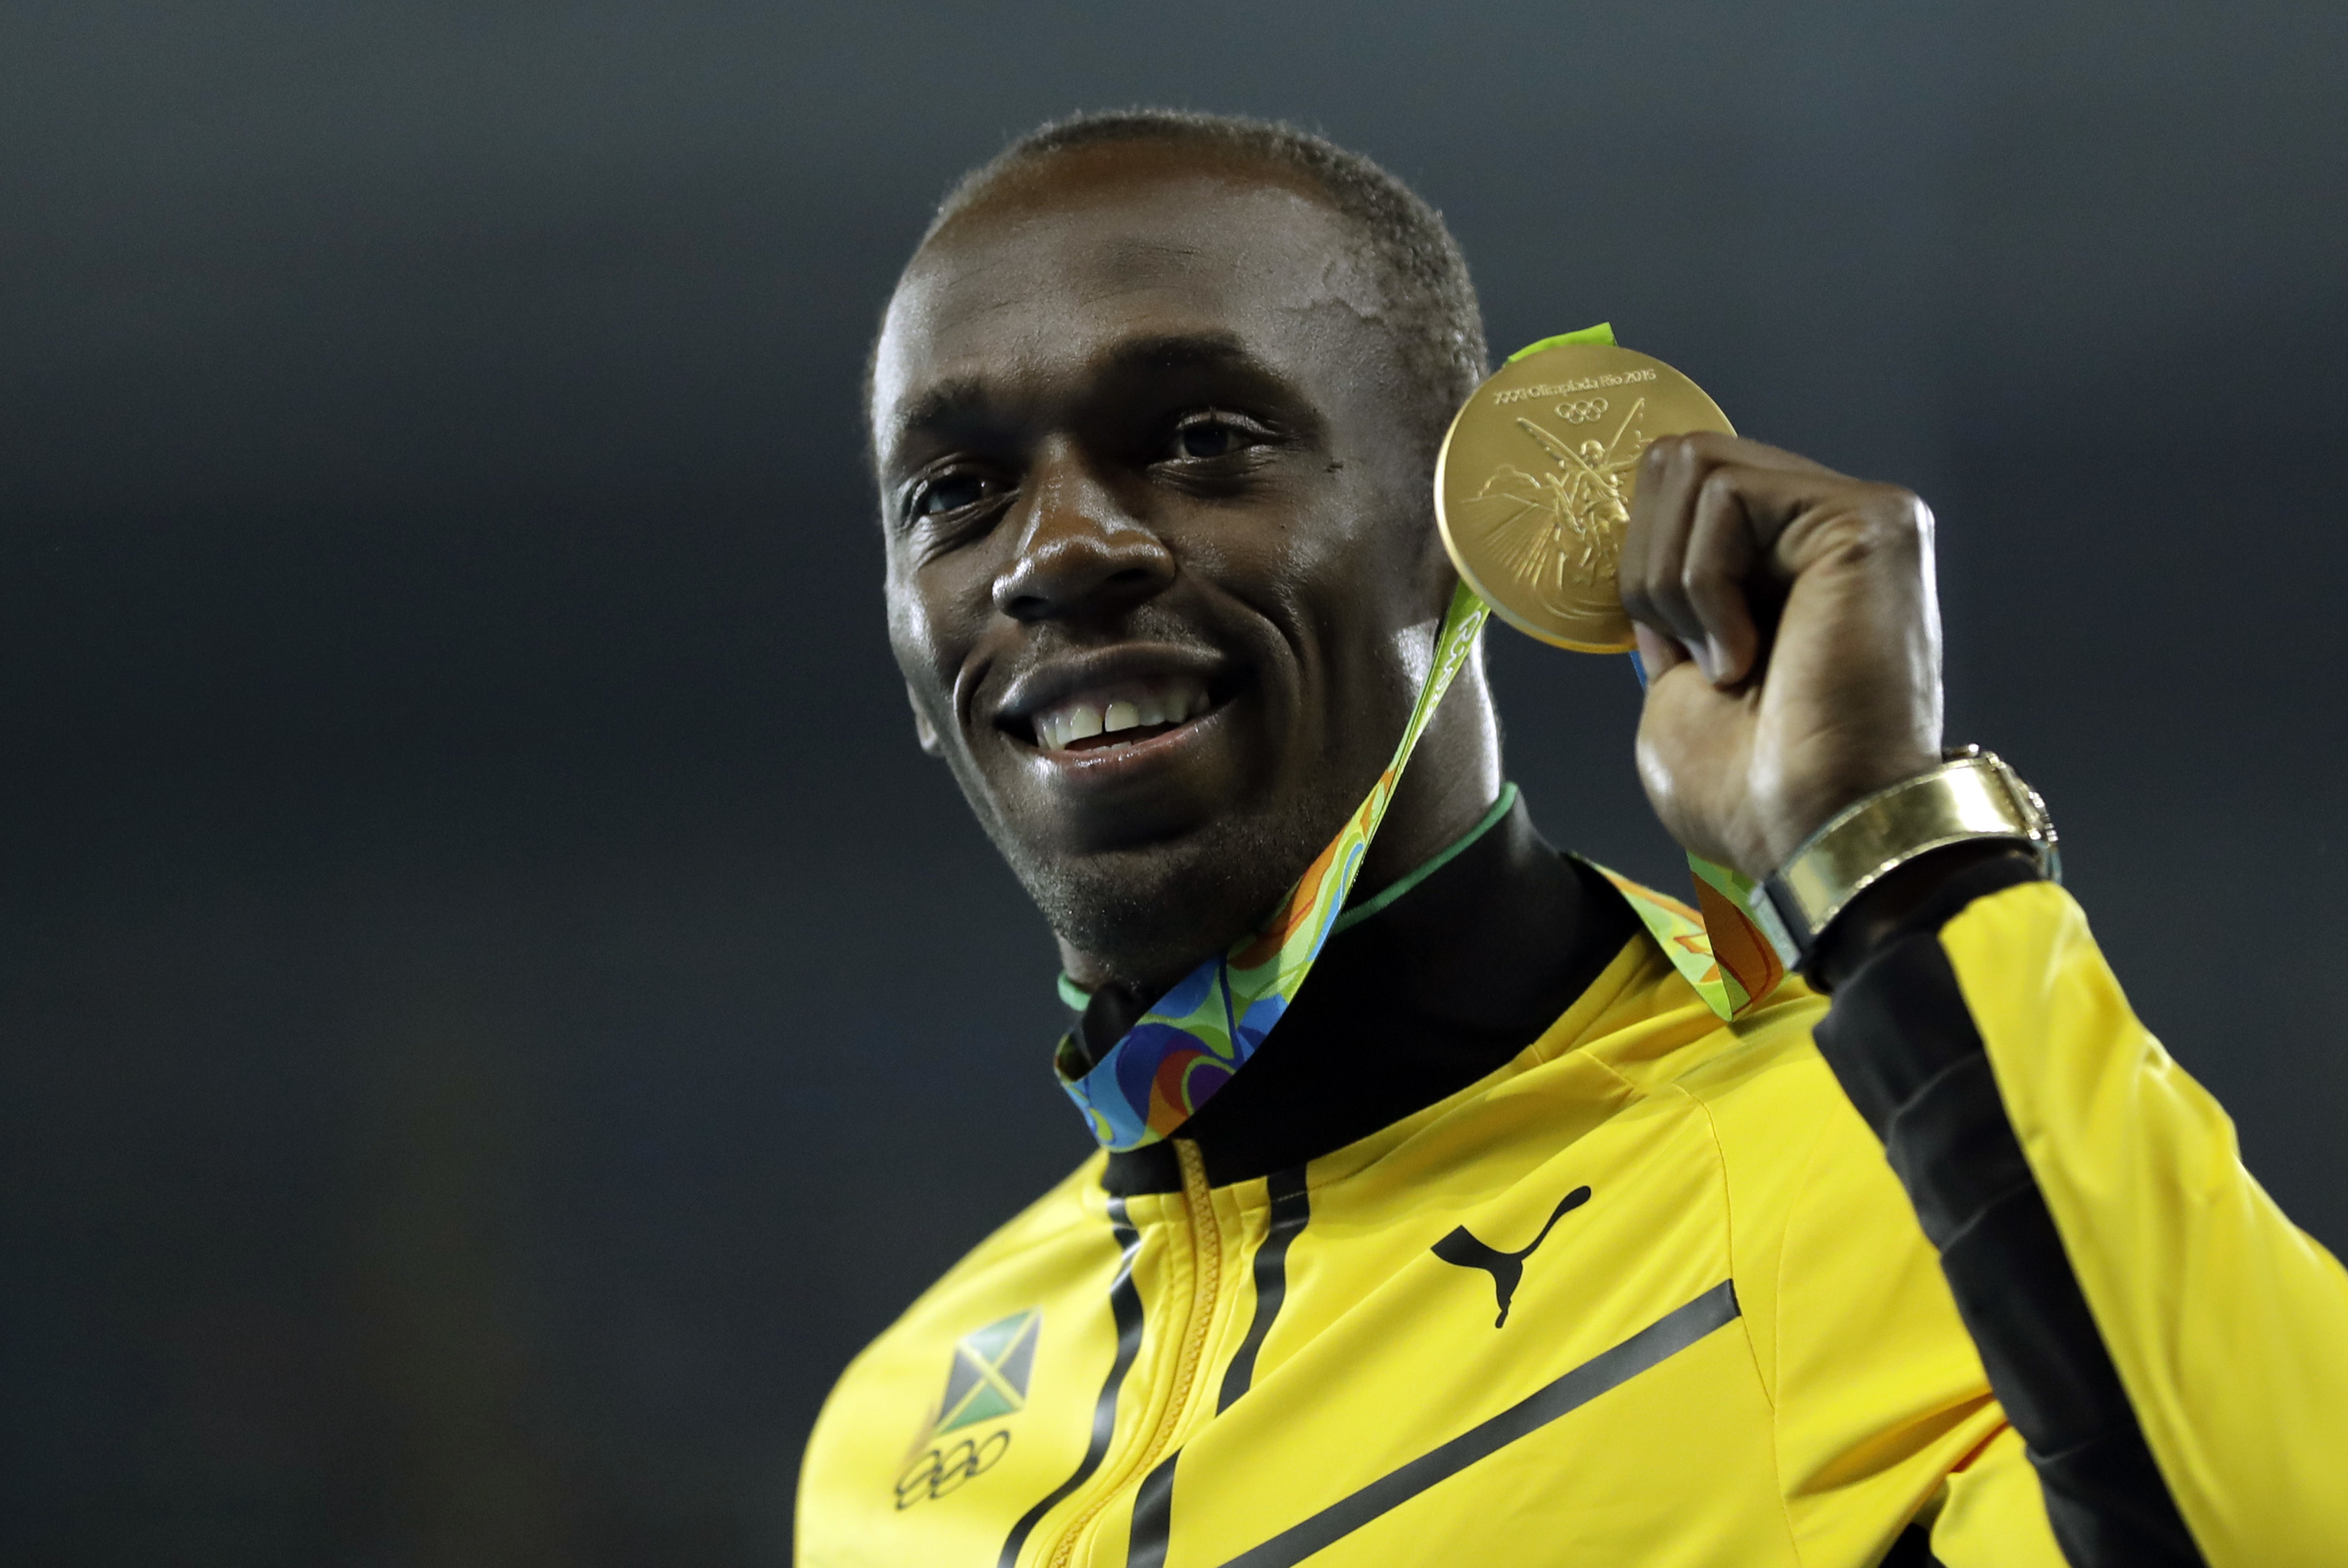 Bolt wins 9th gold as Jamaica wins 4x100 relay - The Blade